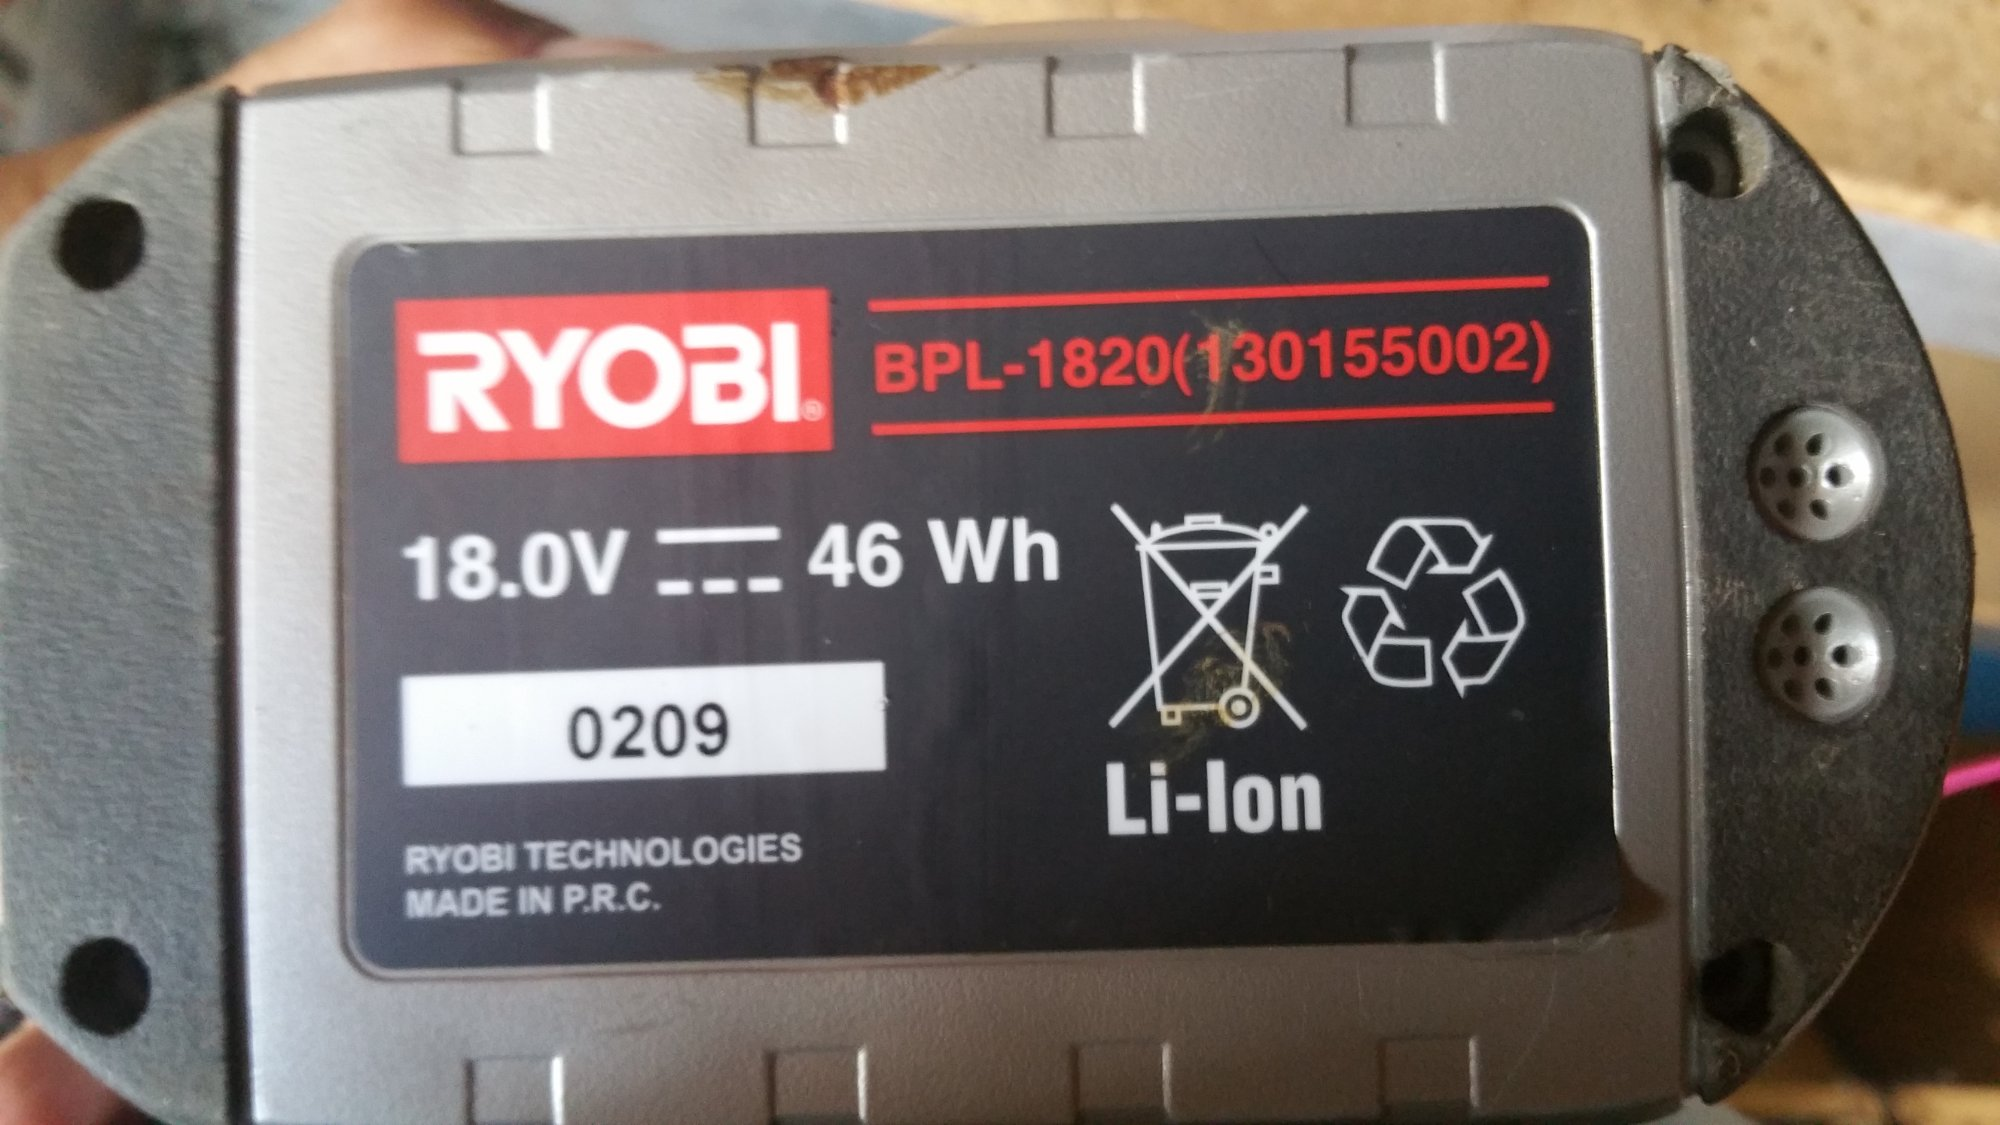 Ryobi Li-ion battery pack (Similar to Bosch, Makita Li-Ion Packs)